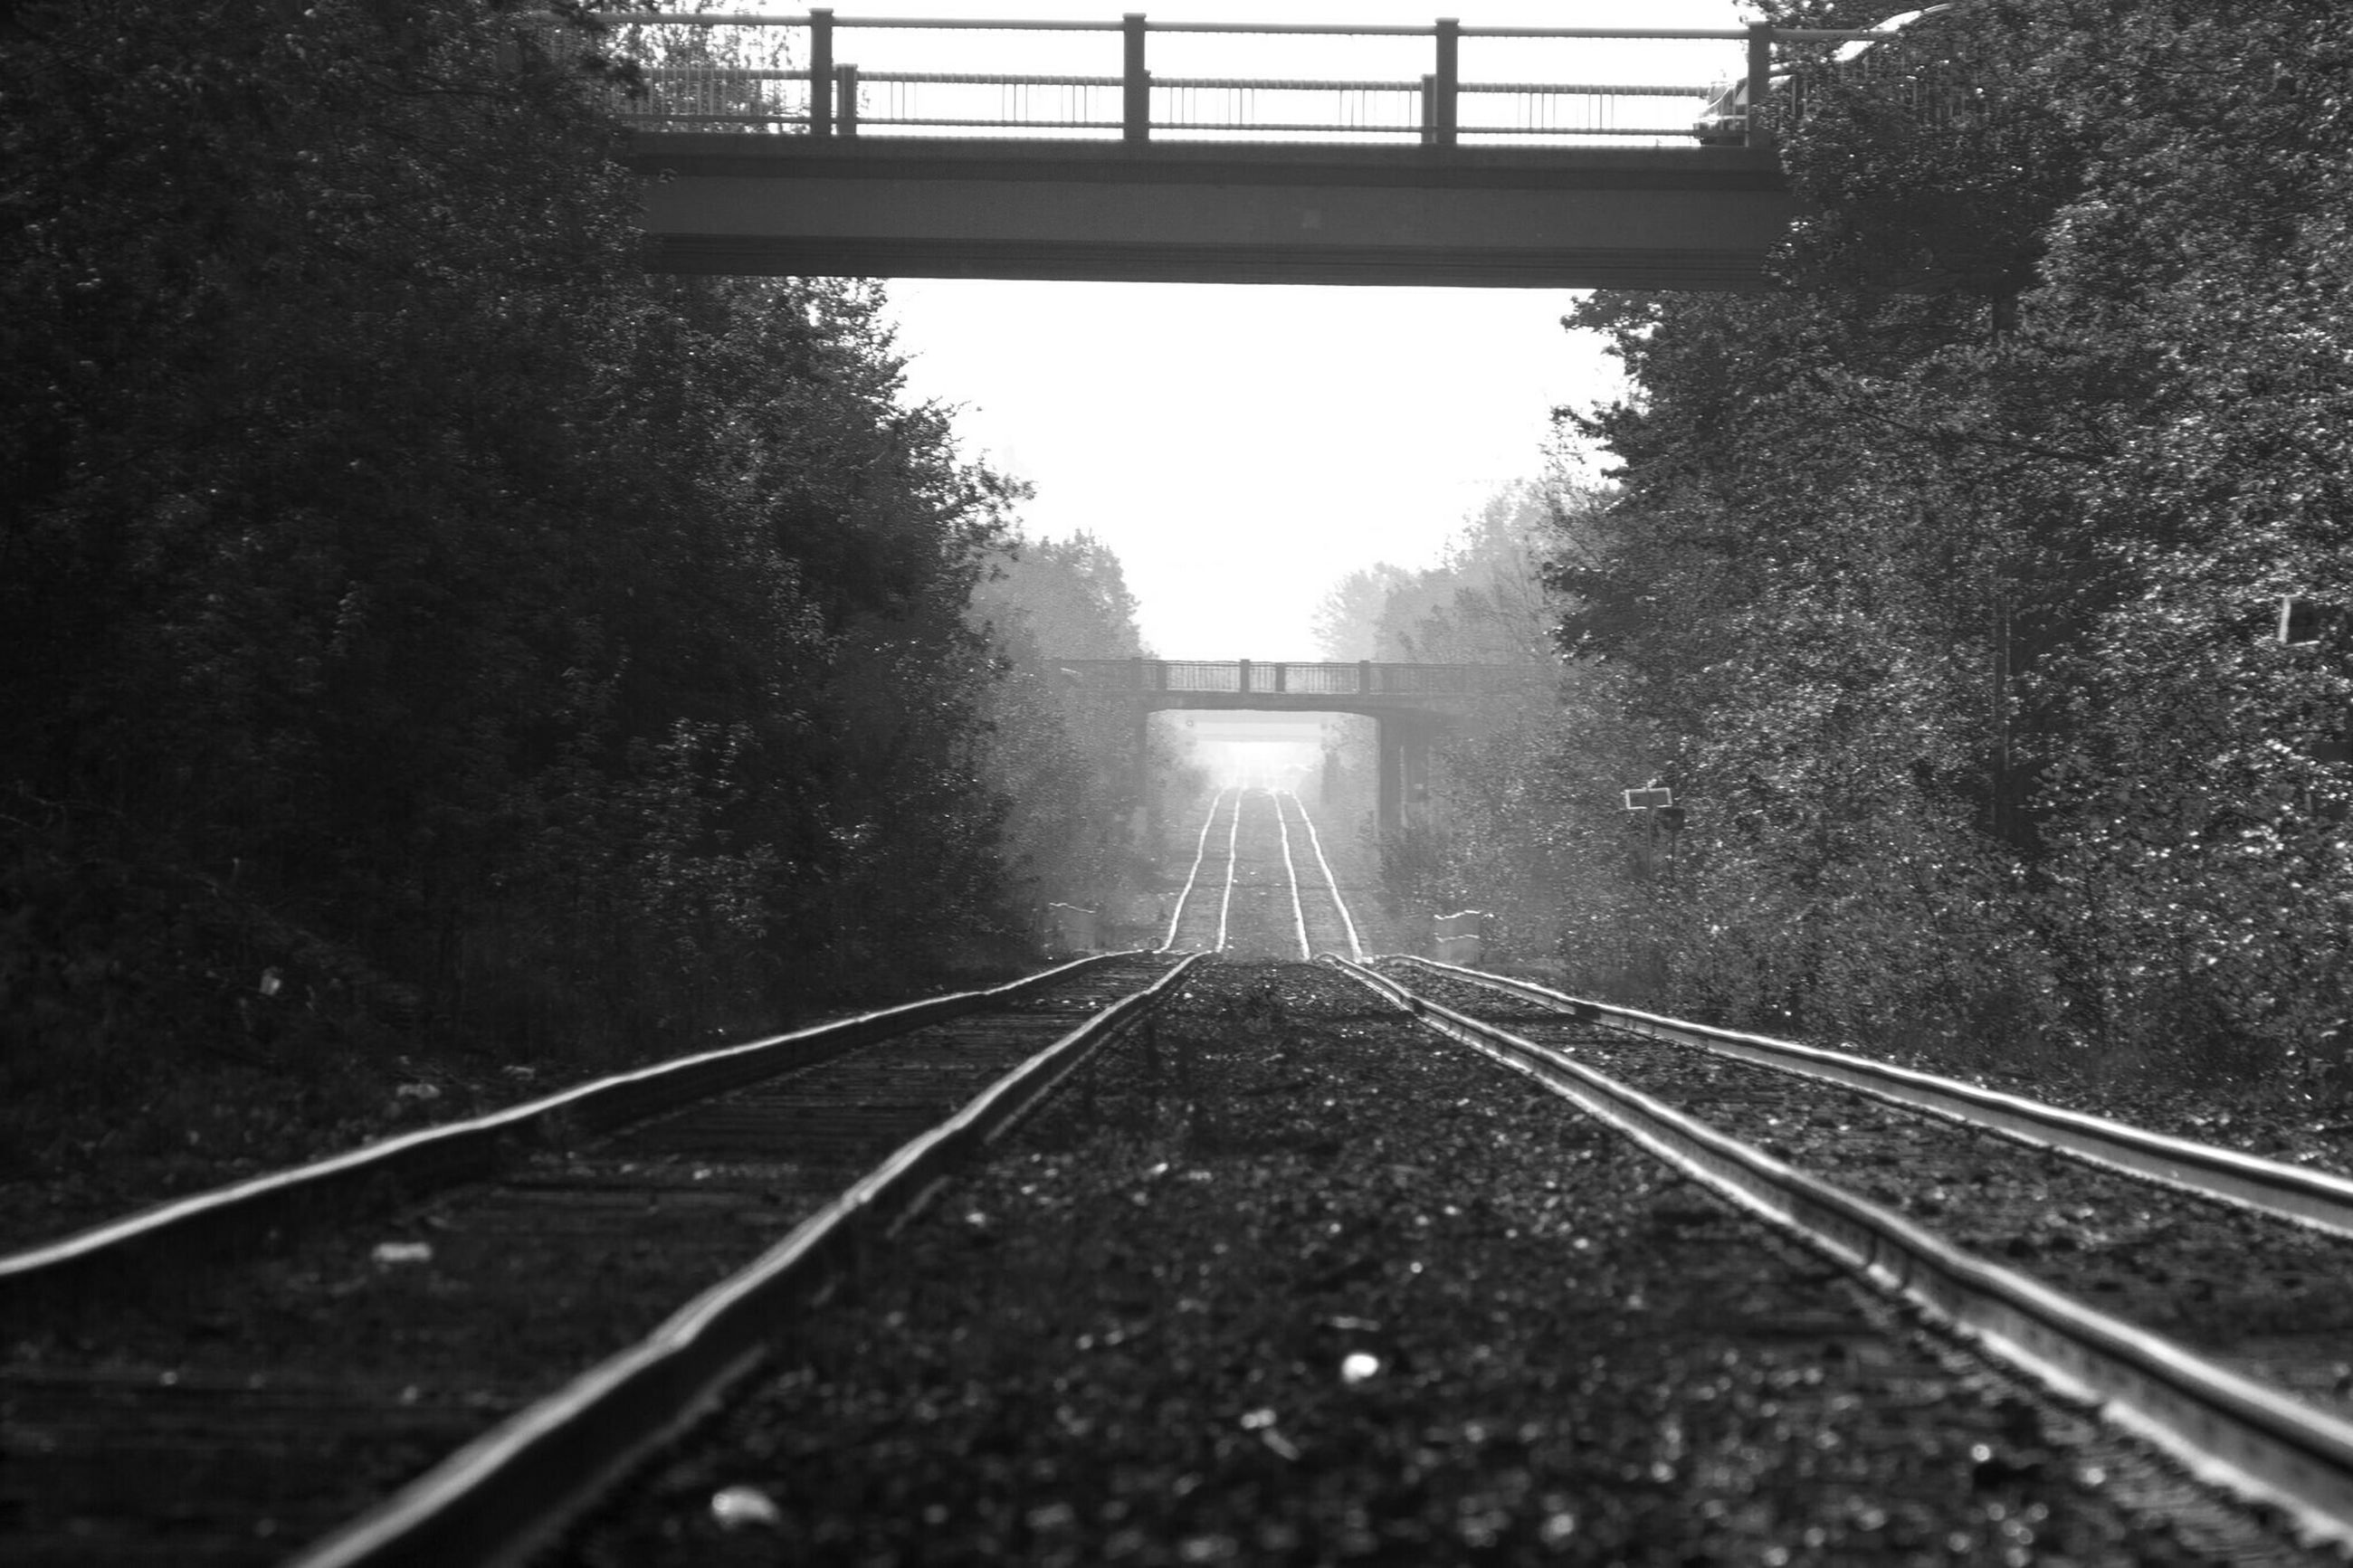 railroad track, the way forward, transportation, diminishing perspective, tree, rail transportation, vanishing point, connection, railing, long, railway track, day, tranquility, metal, straight, surface level, forest, no people, nature, clear sky